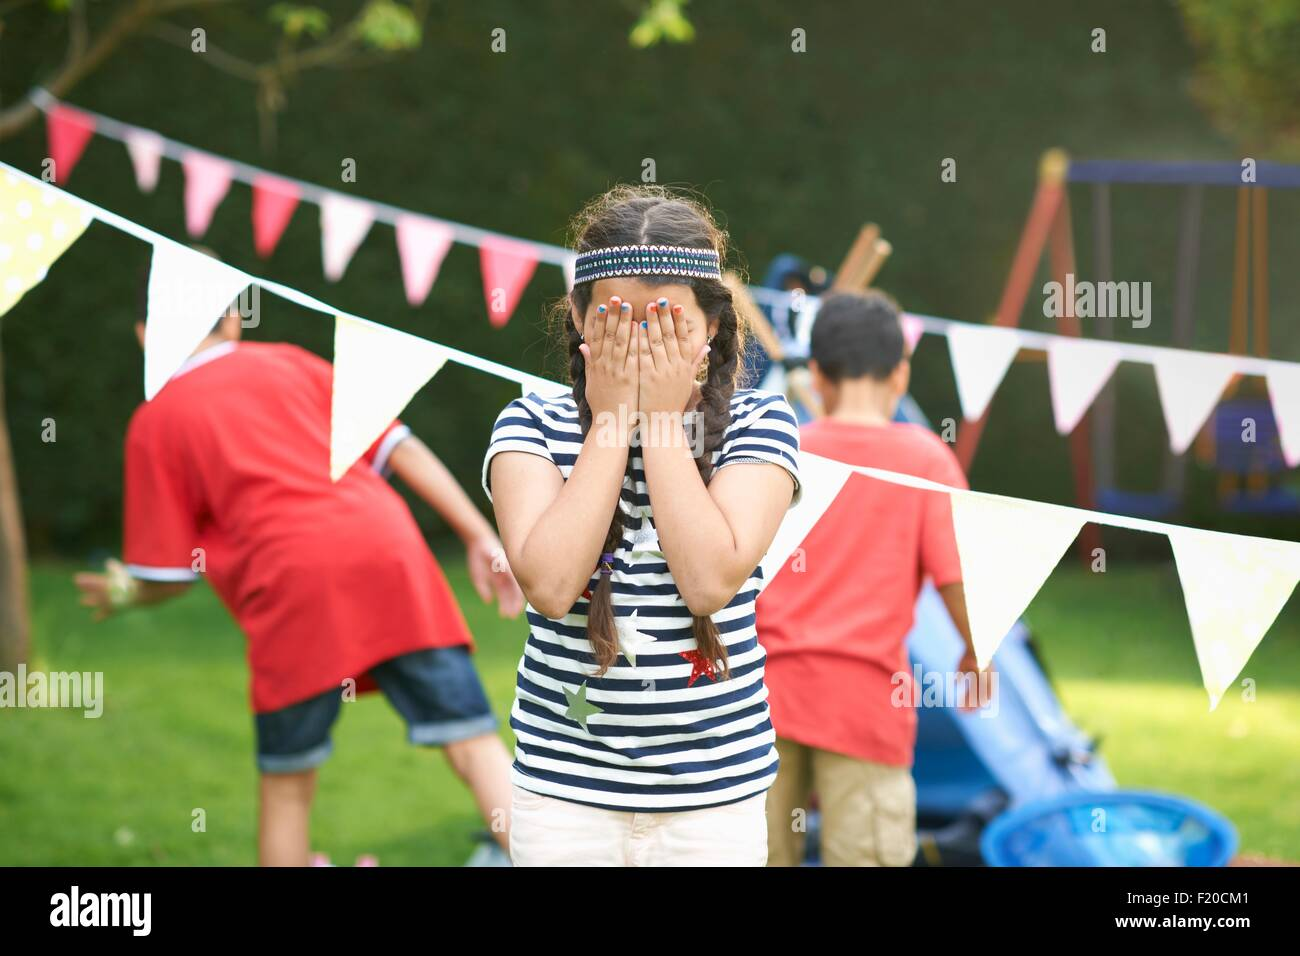 Girl covering her eyes for hide and seek with brothers in garden - Stock Image